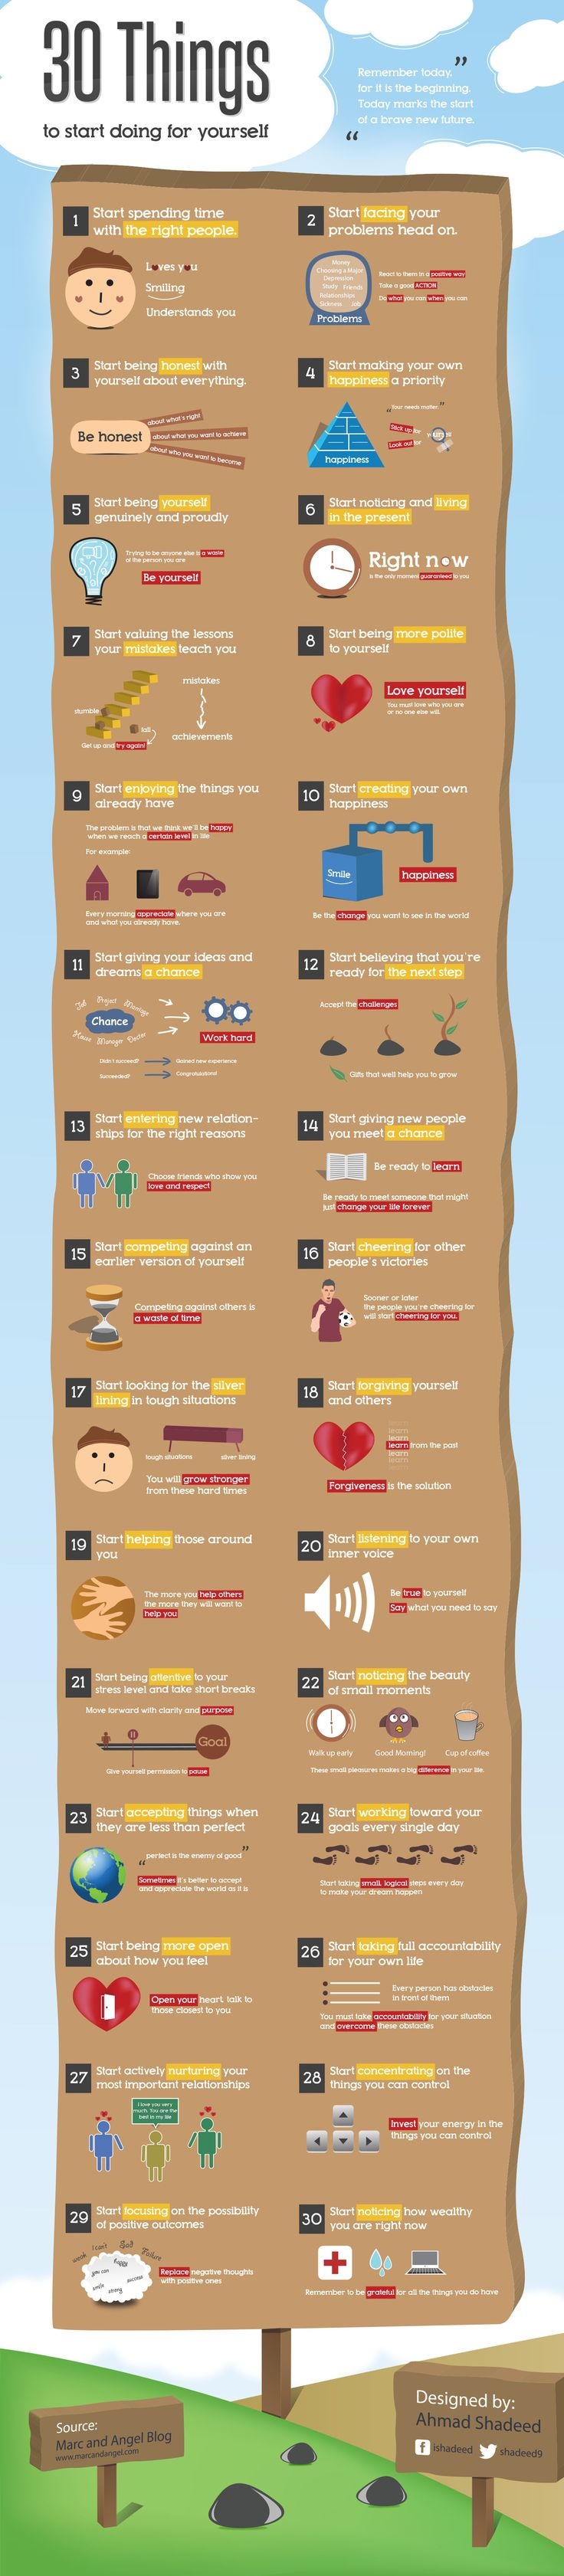 30 Things to Start Doing for Yourself | Marc and Angel Blog. Design by Ahmad Shadeed. Read it: http://www.marcandangel.com/2011/12/18/30-things-to-start-doing-for-yourself/